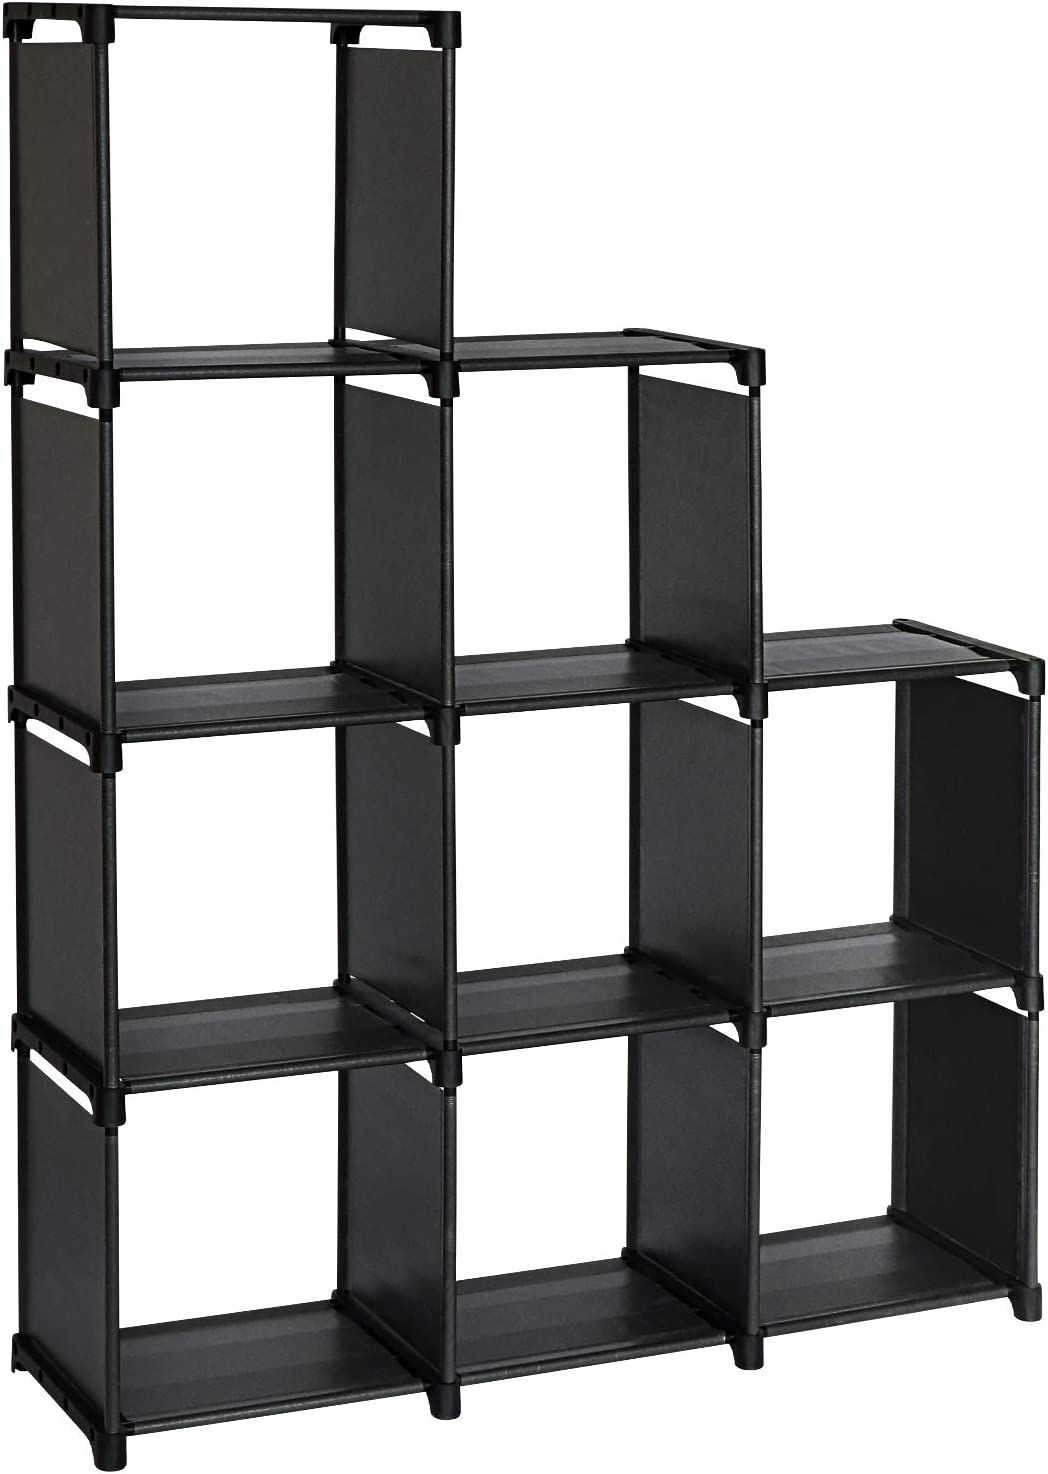 TOPNEW 9 Cube Storage Shelves DIY Closet Organizers and Storage Black Cube Bookcase in Living Room, Bedroom, Kid's Room for Books, Clothes, Toys, Shoes and Daily Necessities